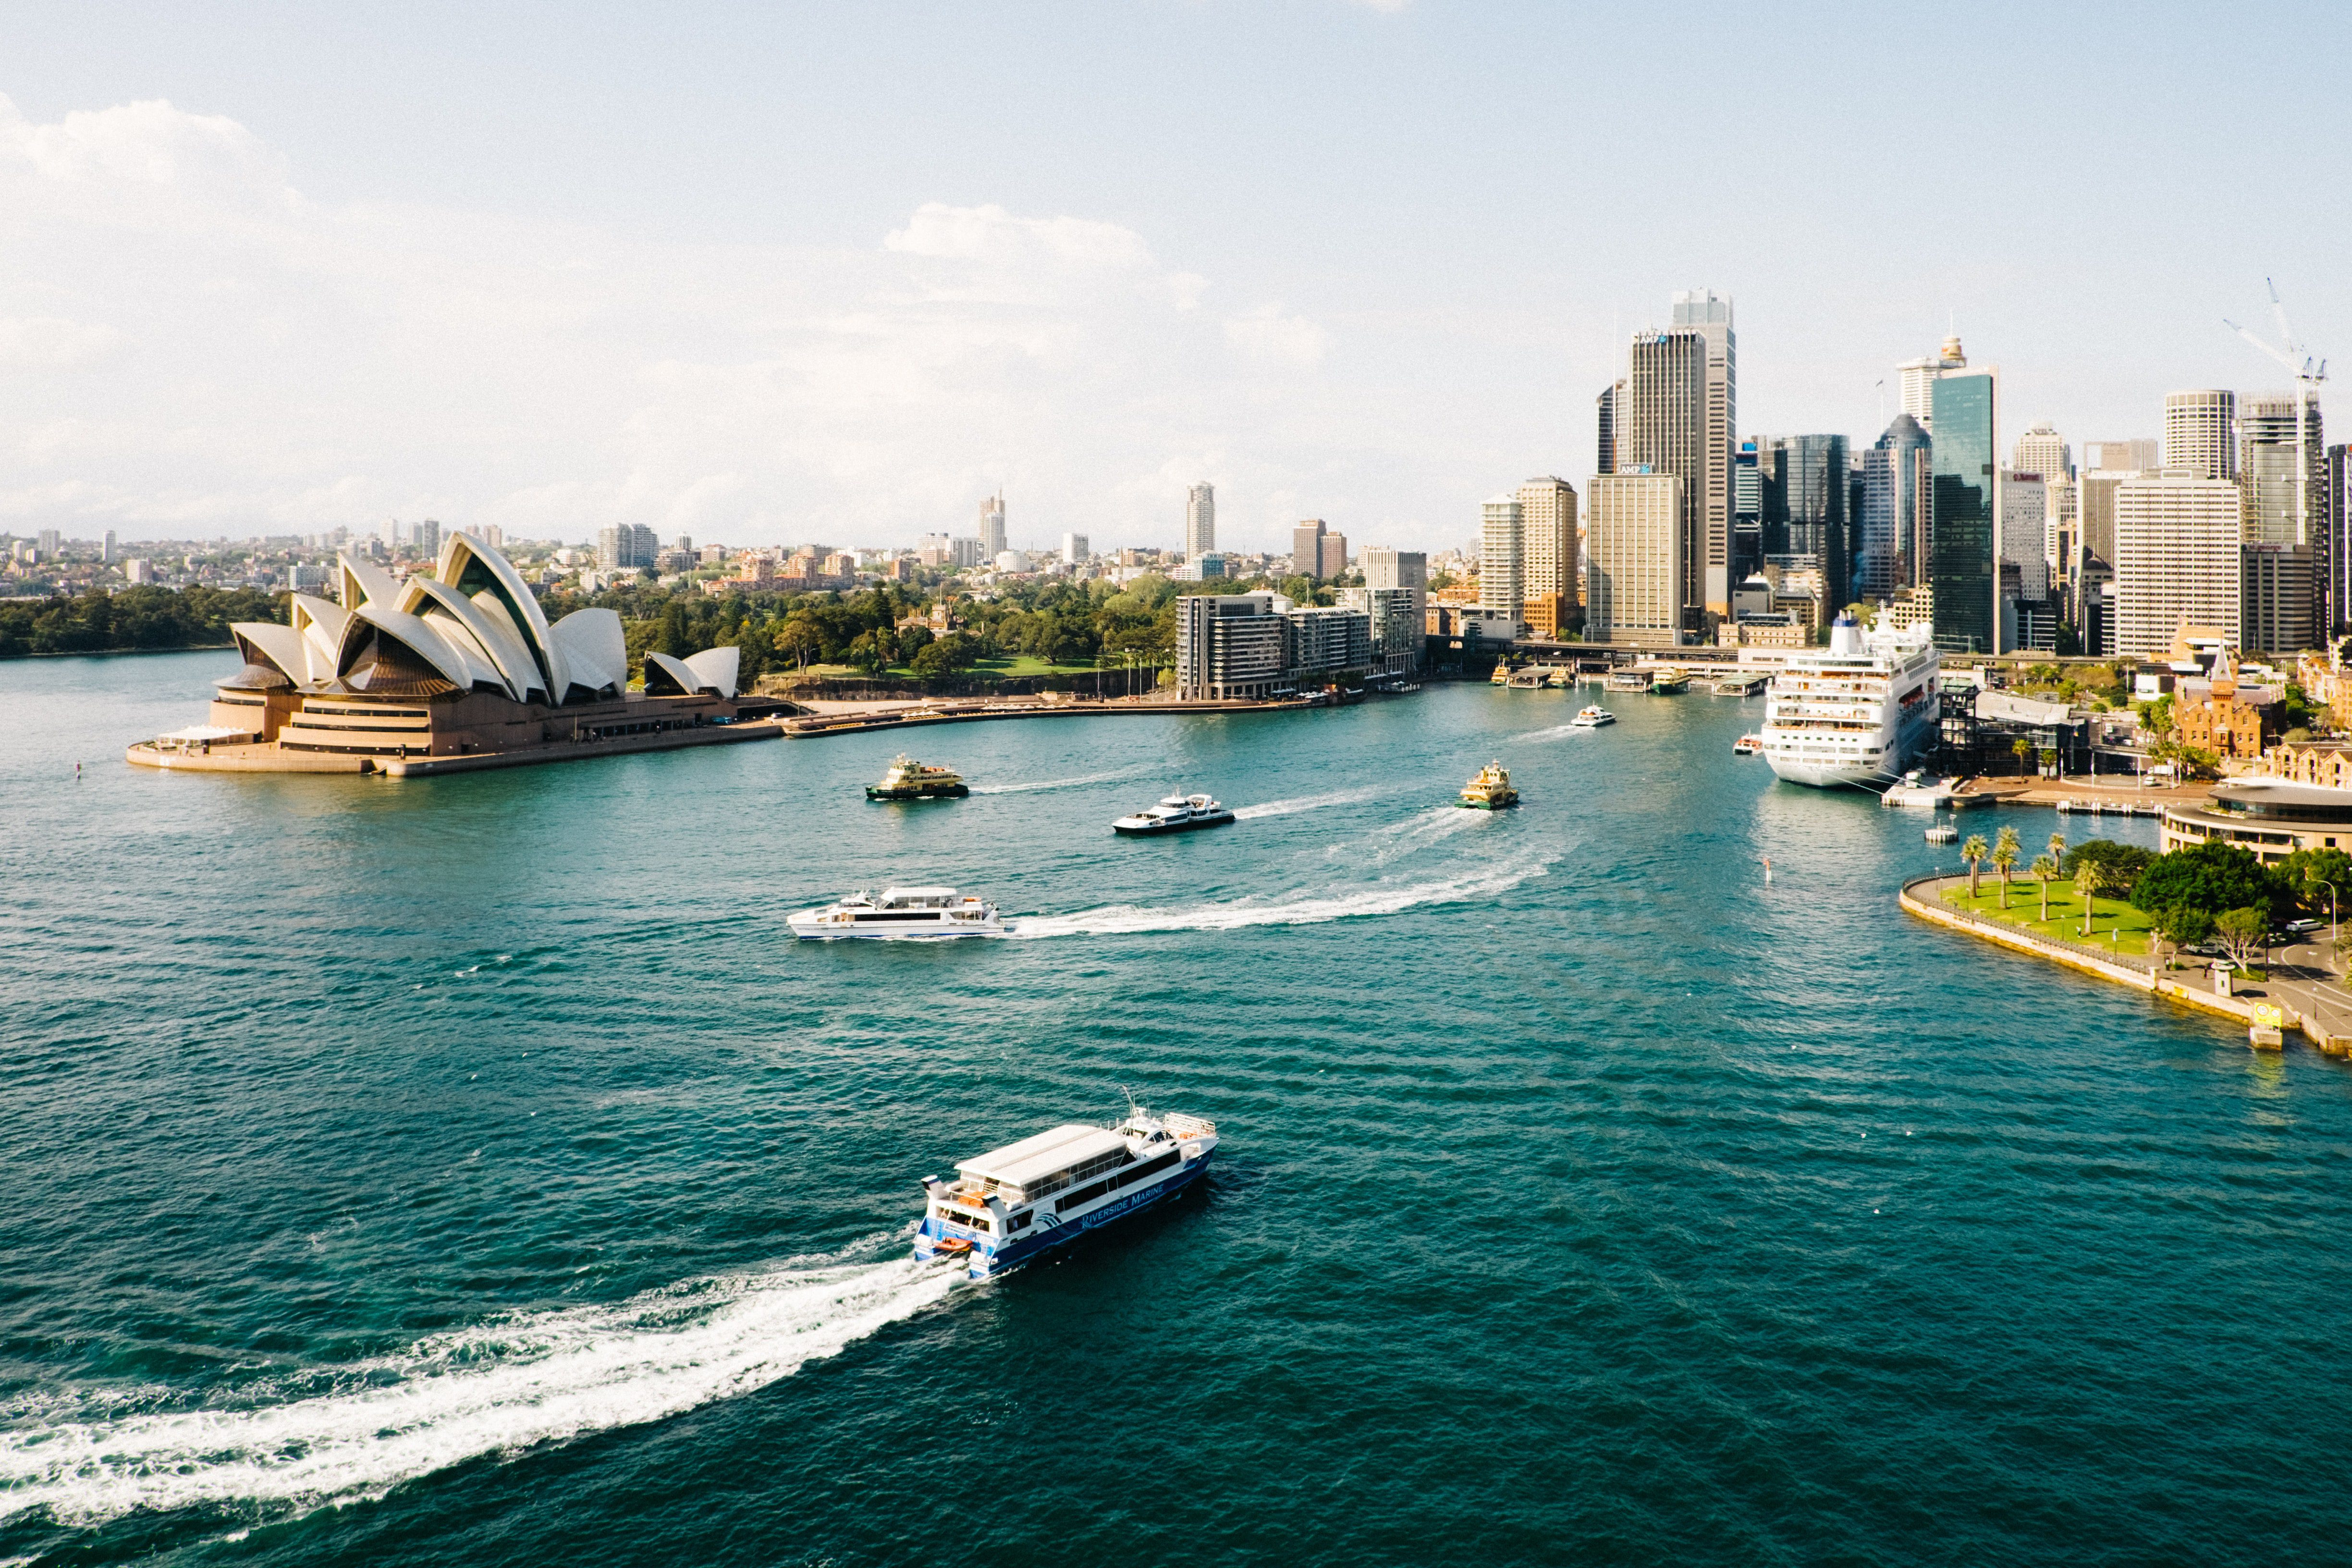 Australia Becomes a Top Travel Destination in the World 2